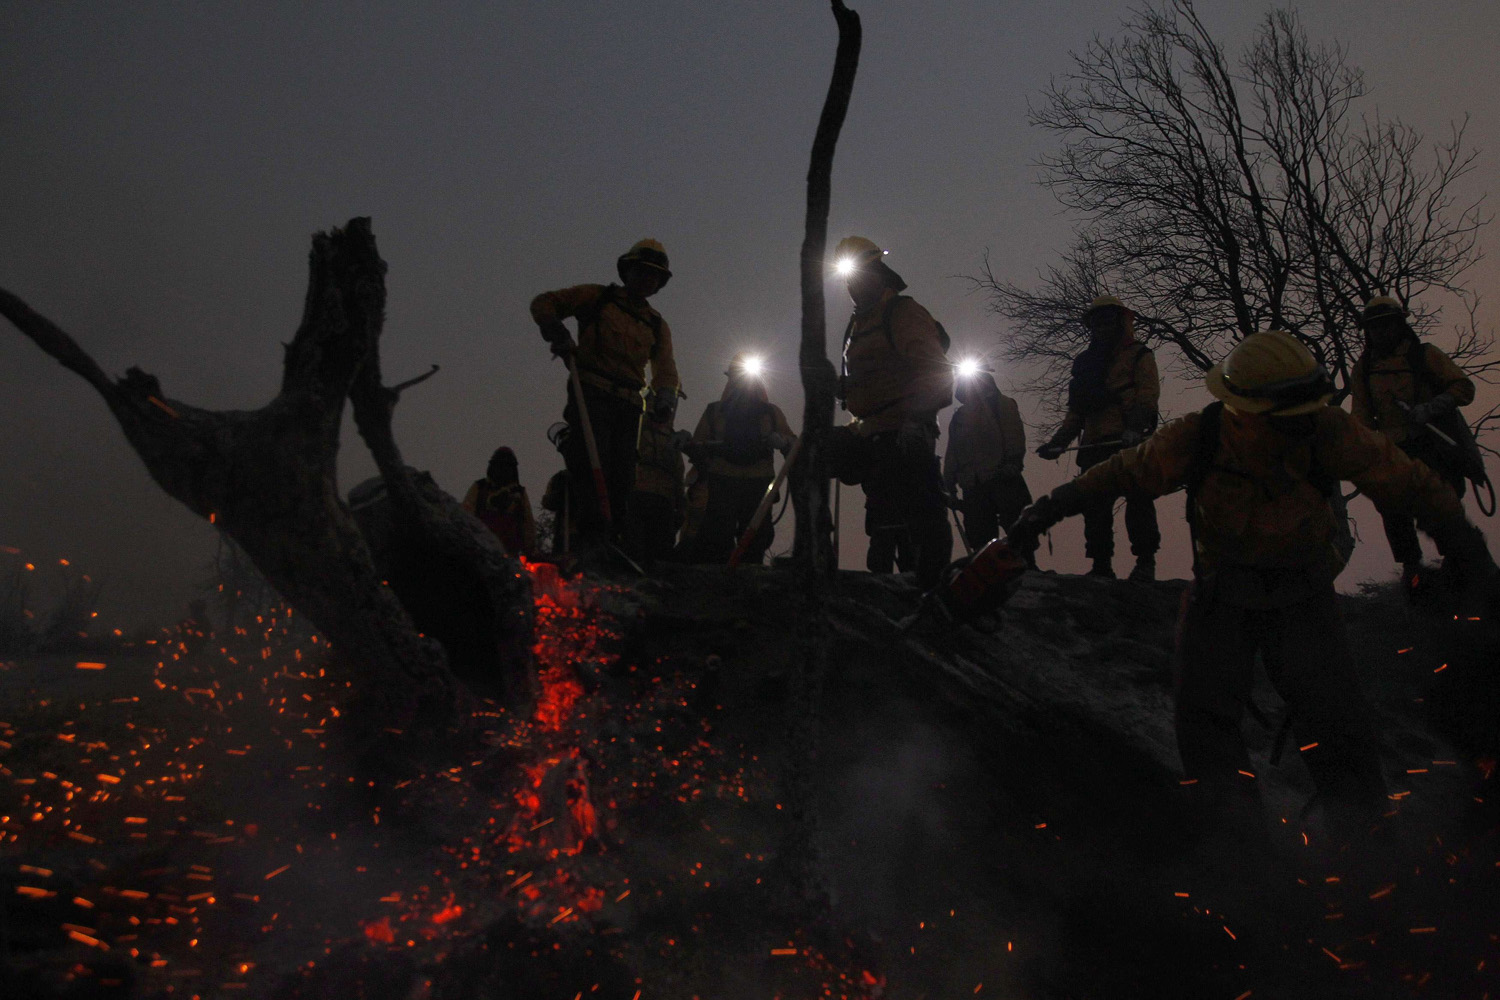 Jan. 7, 2014. Workers from Chile's National Forestry Corporation (CONAF) inspect a burned area during a forest fire in the rural town of Melipilla at Bollenar area, about 71 km (44 miles) southwest of Santiago.